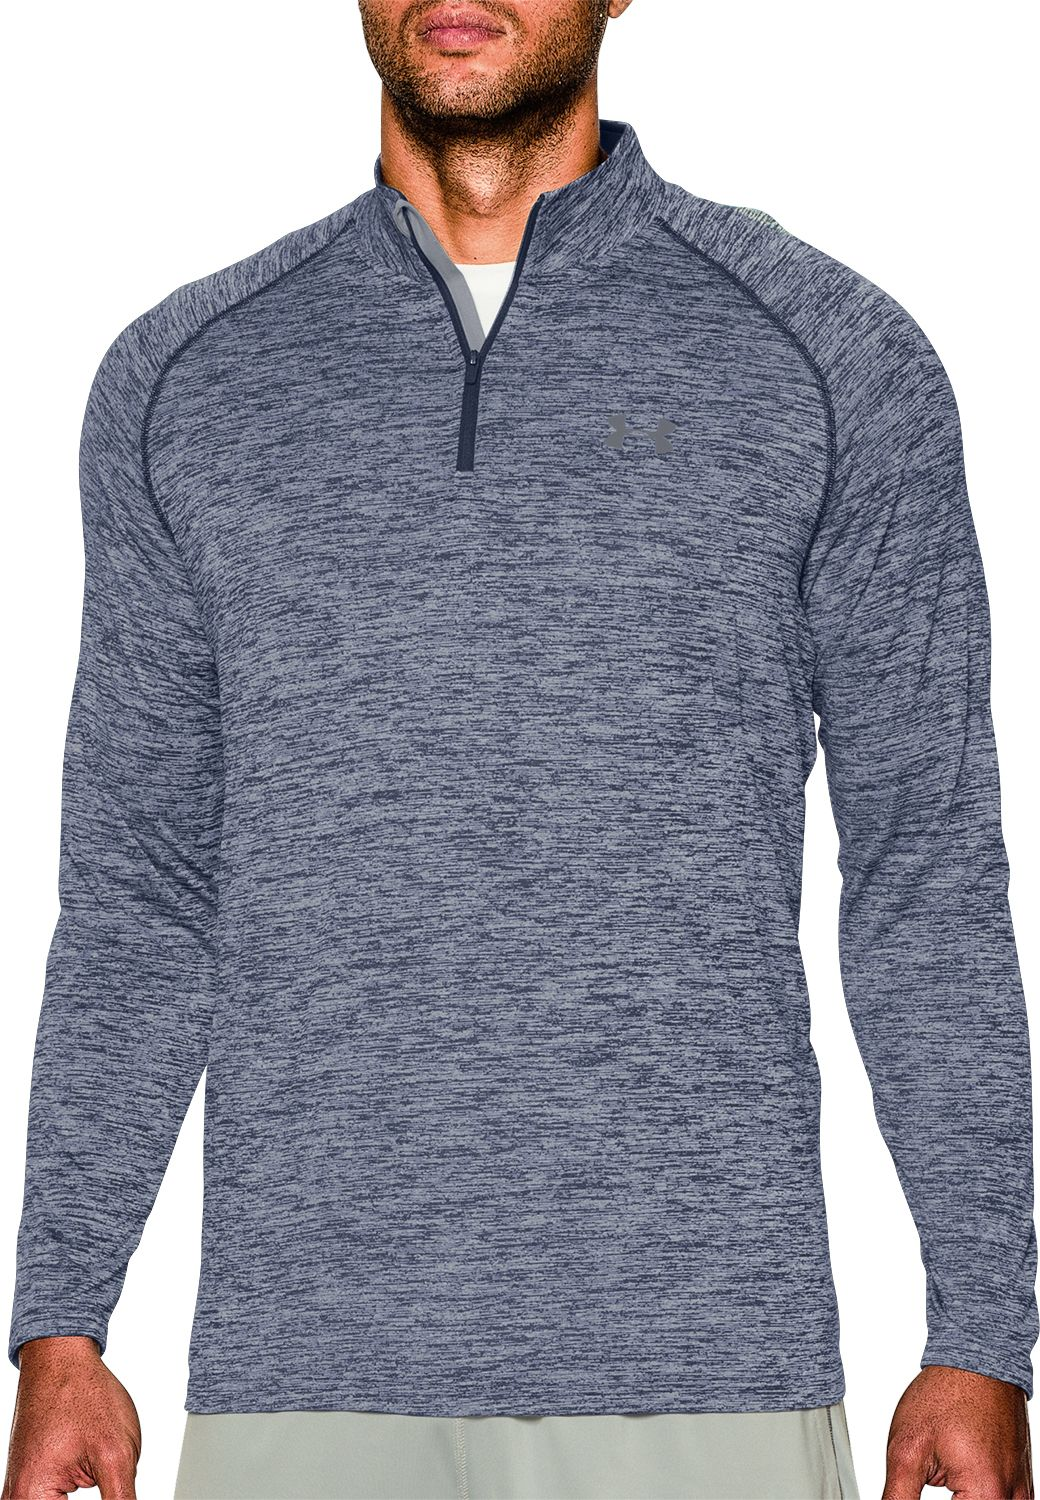 Under Armour Men's UA Tech Quarter Zip Long Sleeve Shirt | DICK'S ...